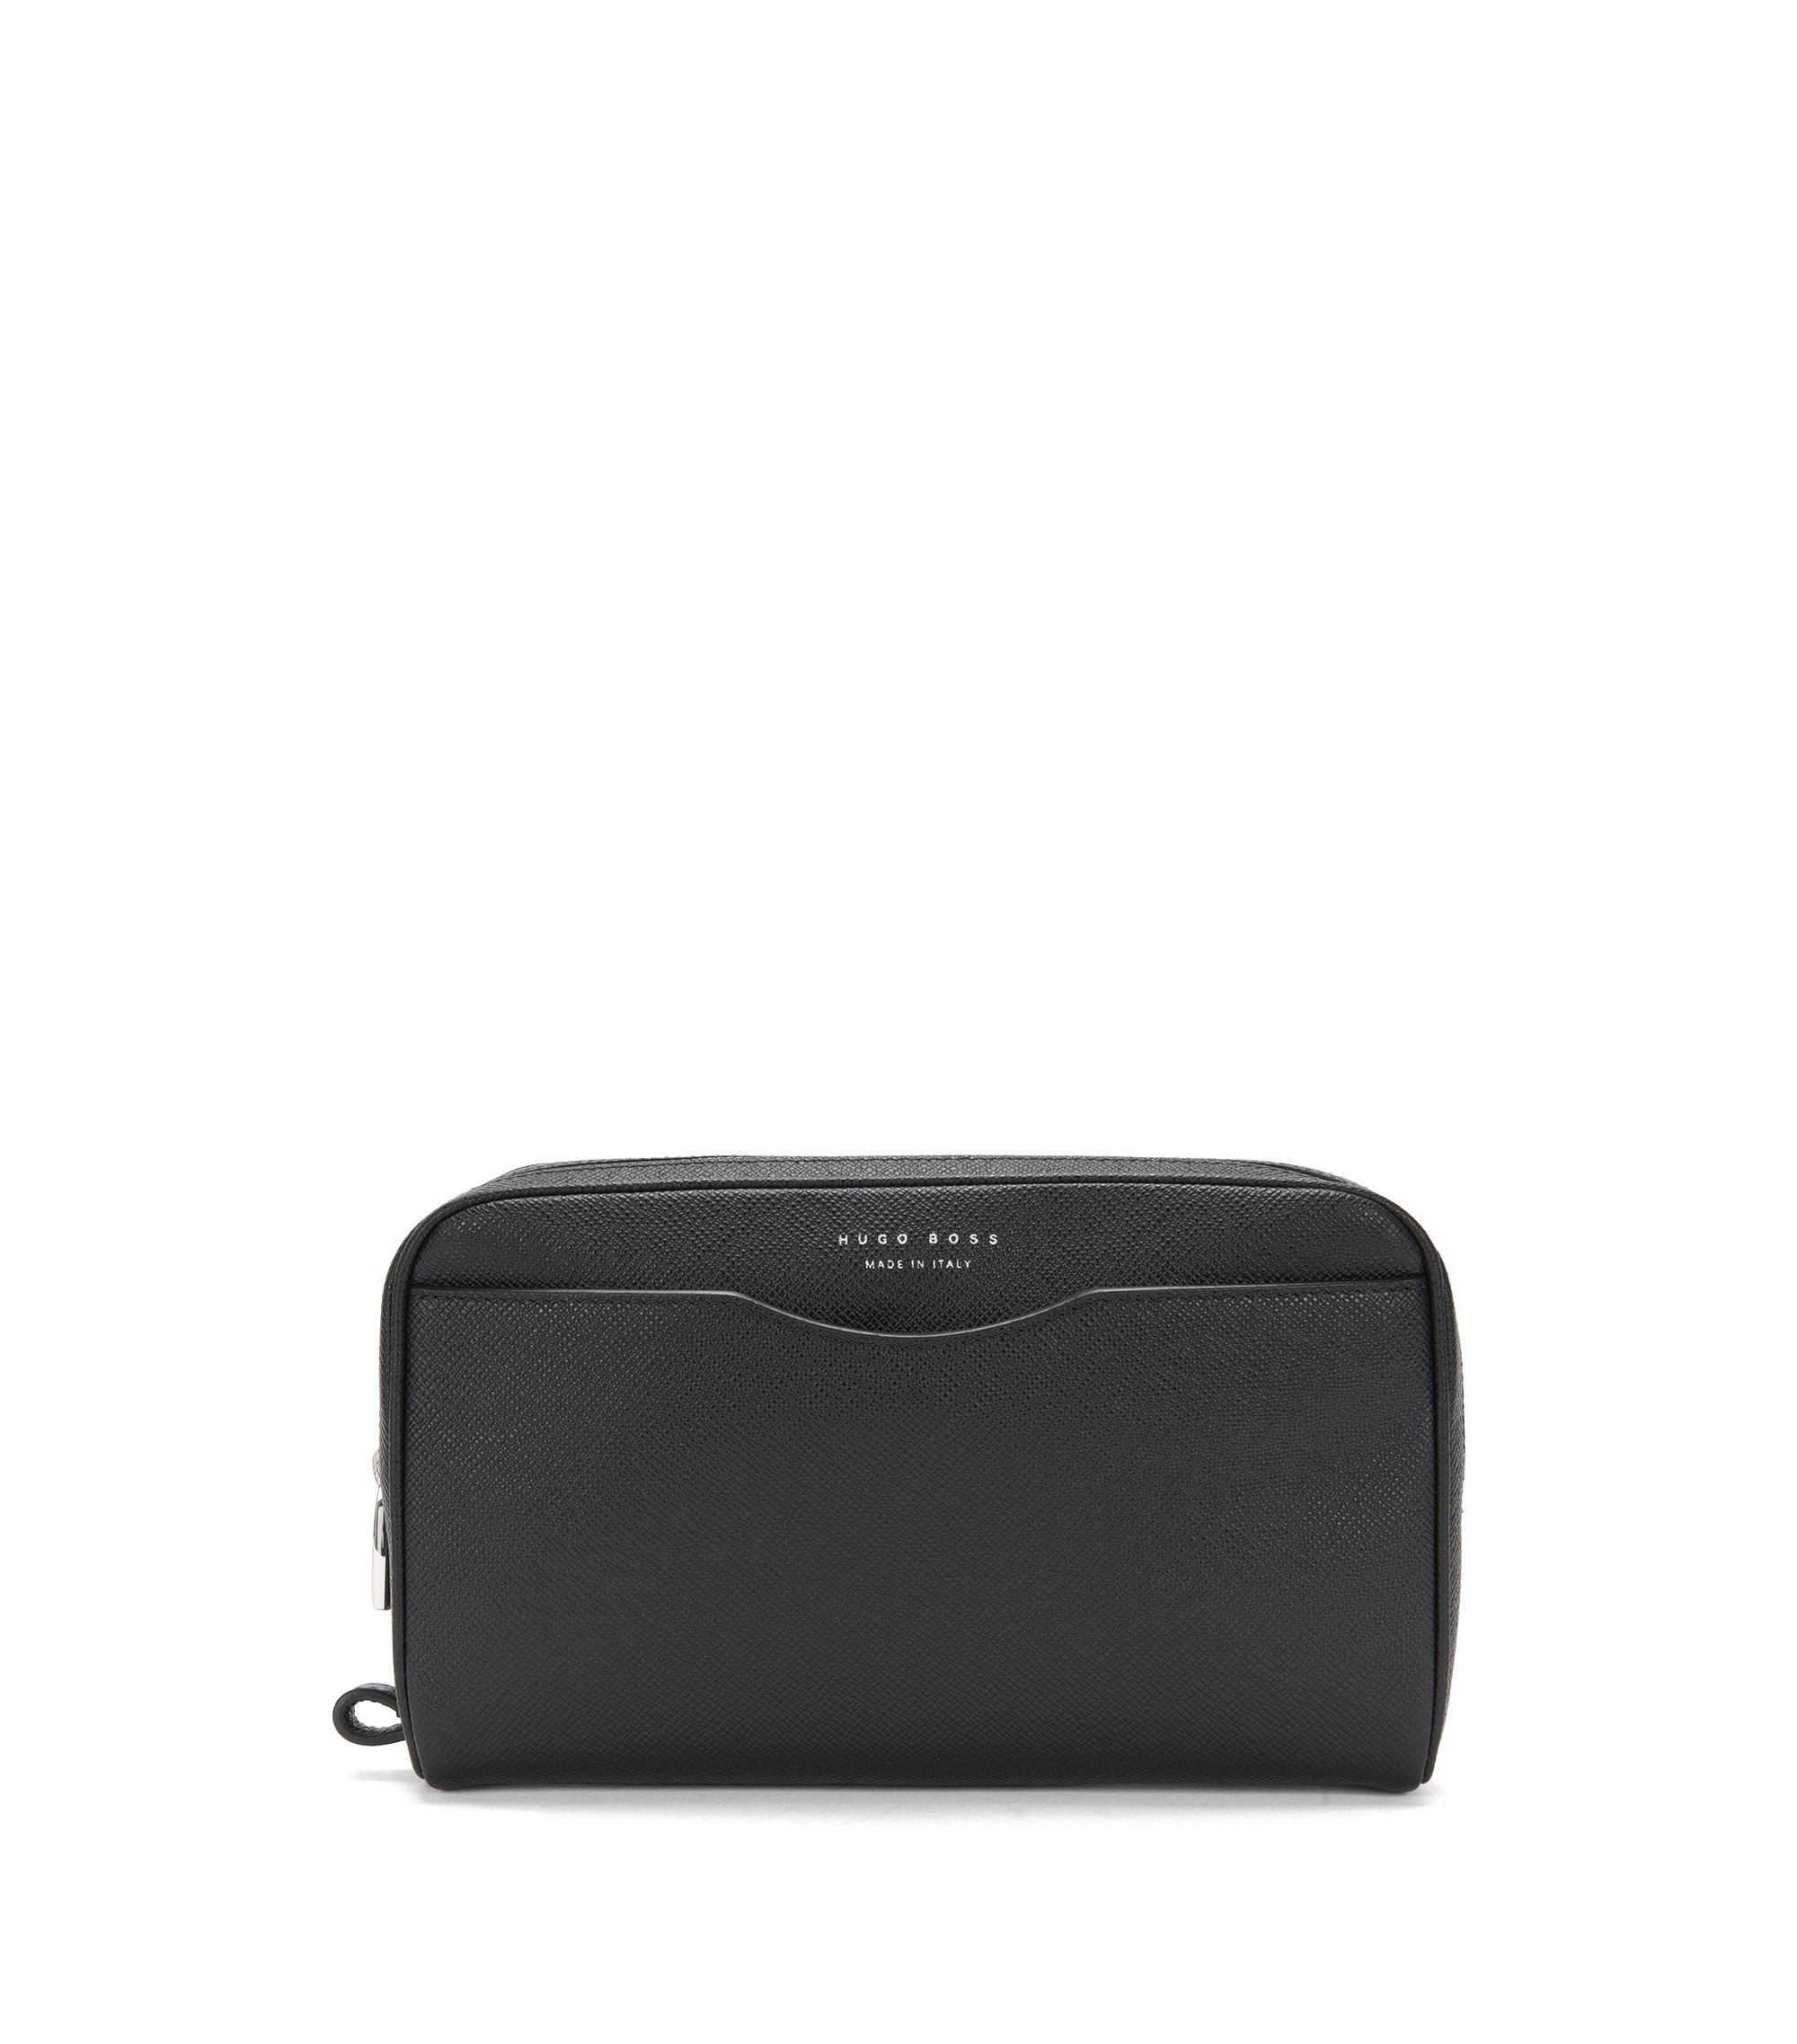 Signature Collection Pouch aus Palmellato-Leder, Schwarz